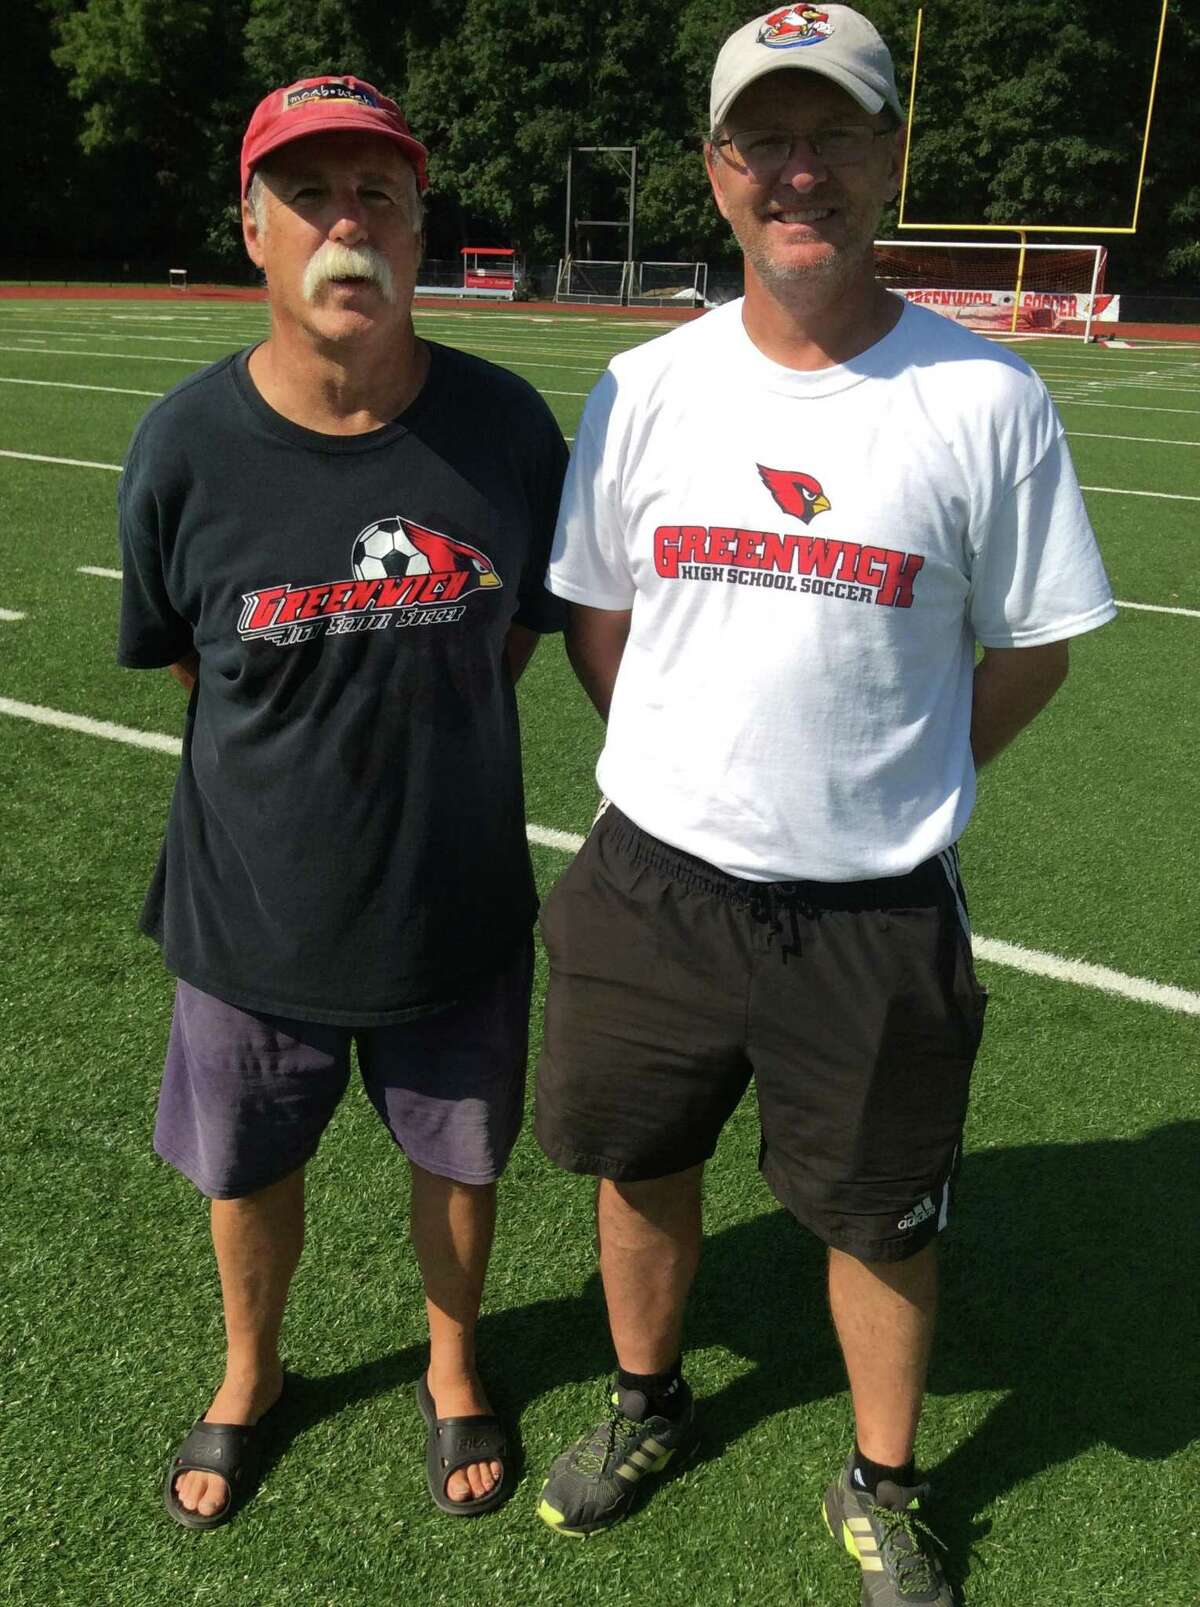 The Greenwich High School boys soccer team is coached by Ray Marschall (assistant coach), left, and Kurt Putnam. September 3, 2018